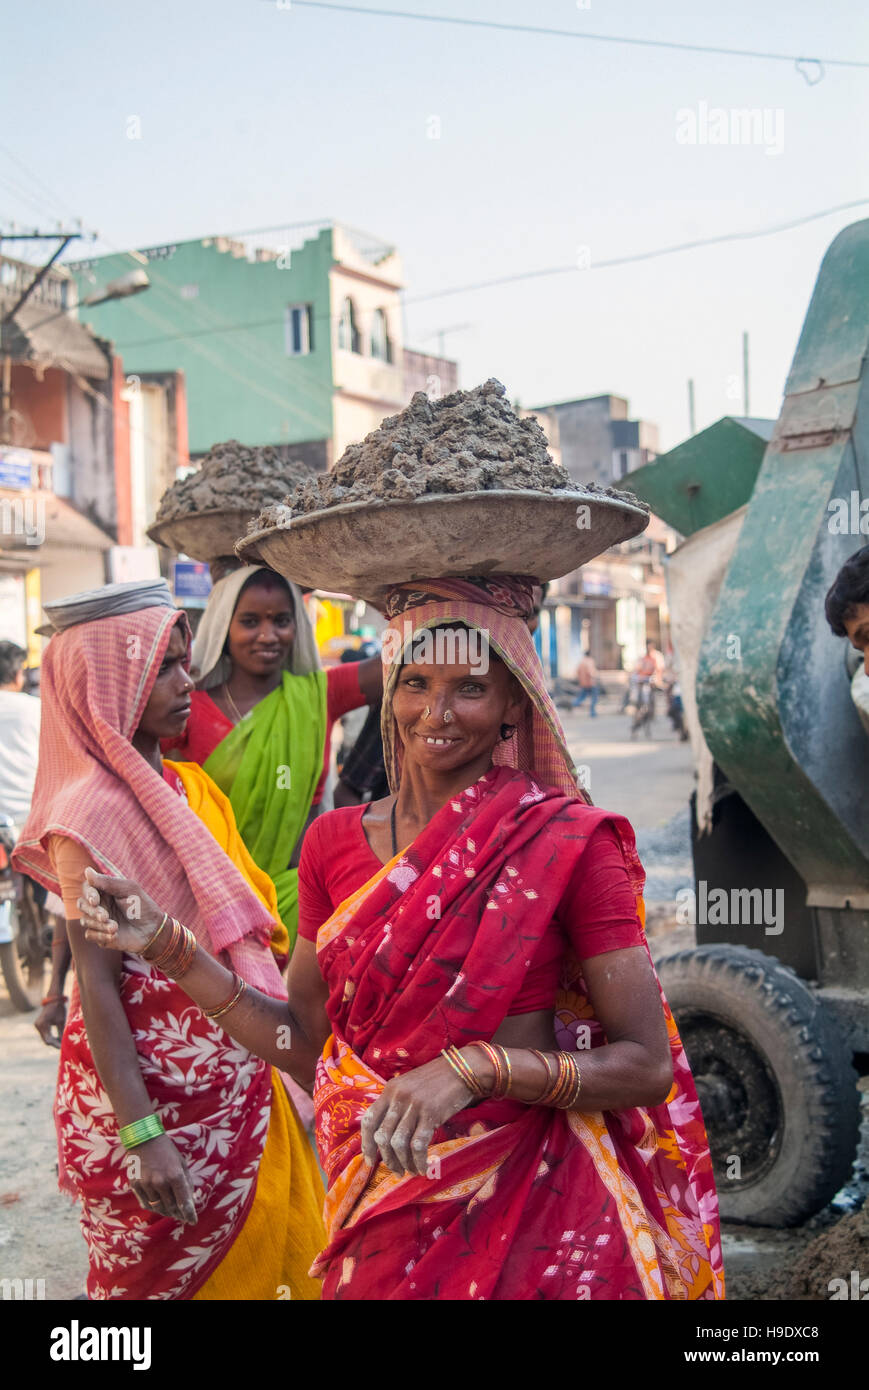 Women carrying cement on their head in Bhubaneswar, India. - Stock Image